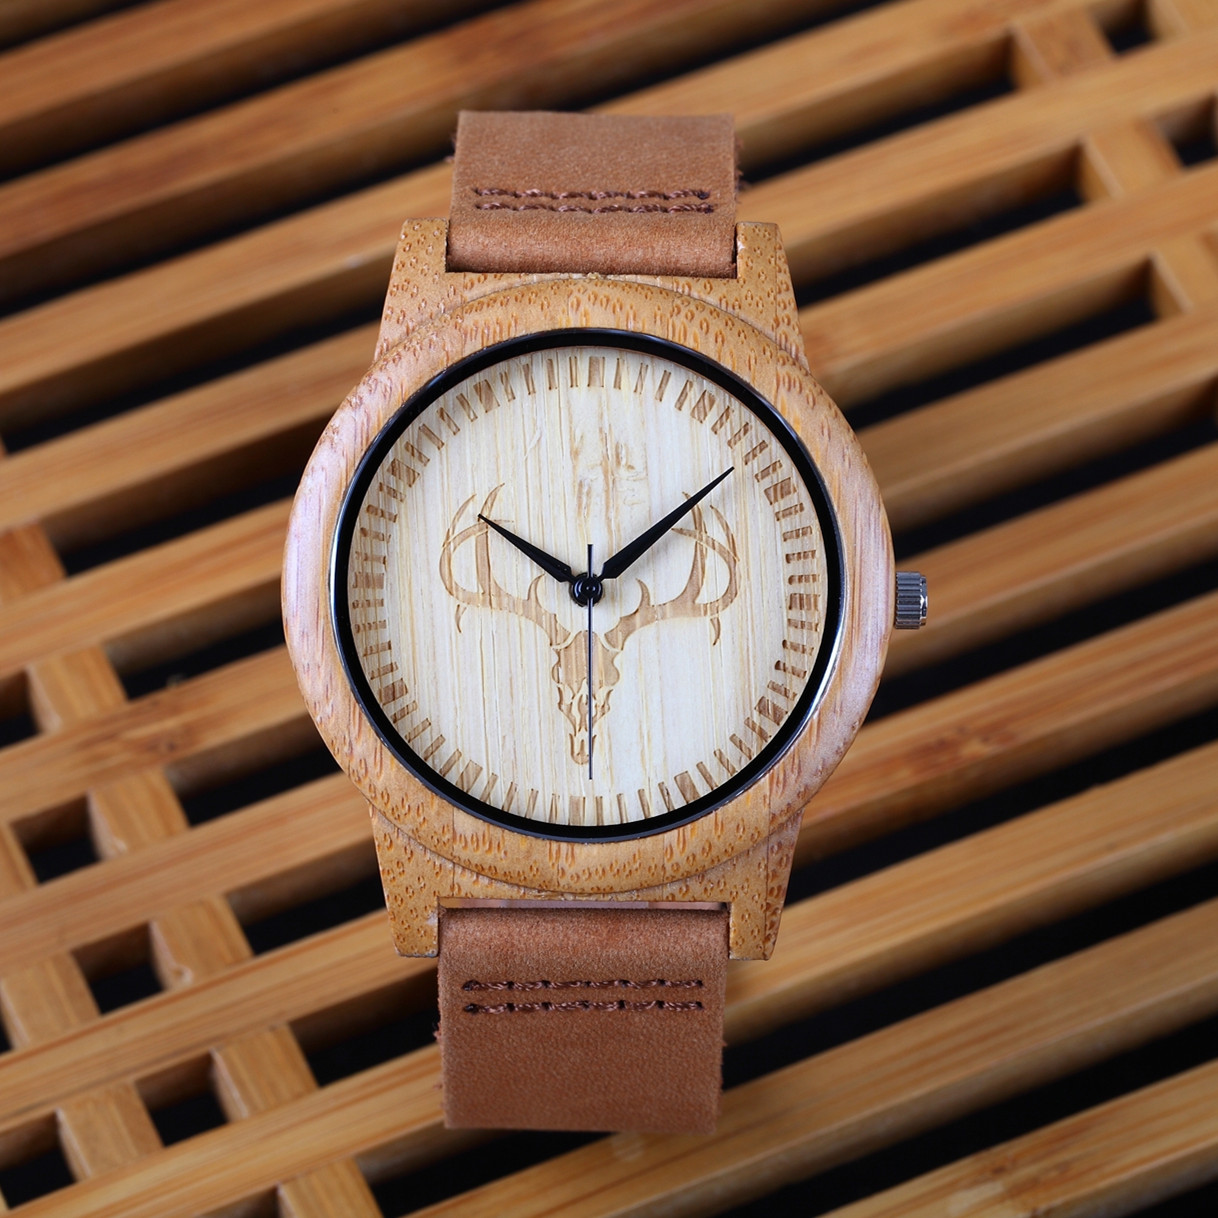 2018 Men's Women's Bamboo Wooden Wristwatches With Genuine Leather Band Luxury Deer Wood Watches for Men women as Gifts Item luxury fashion japan quartz men wood watch arabic big number vintage genuine leather band bamboo wooden wristwatches antibrittle